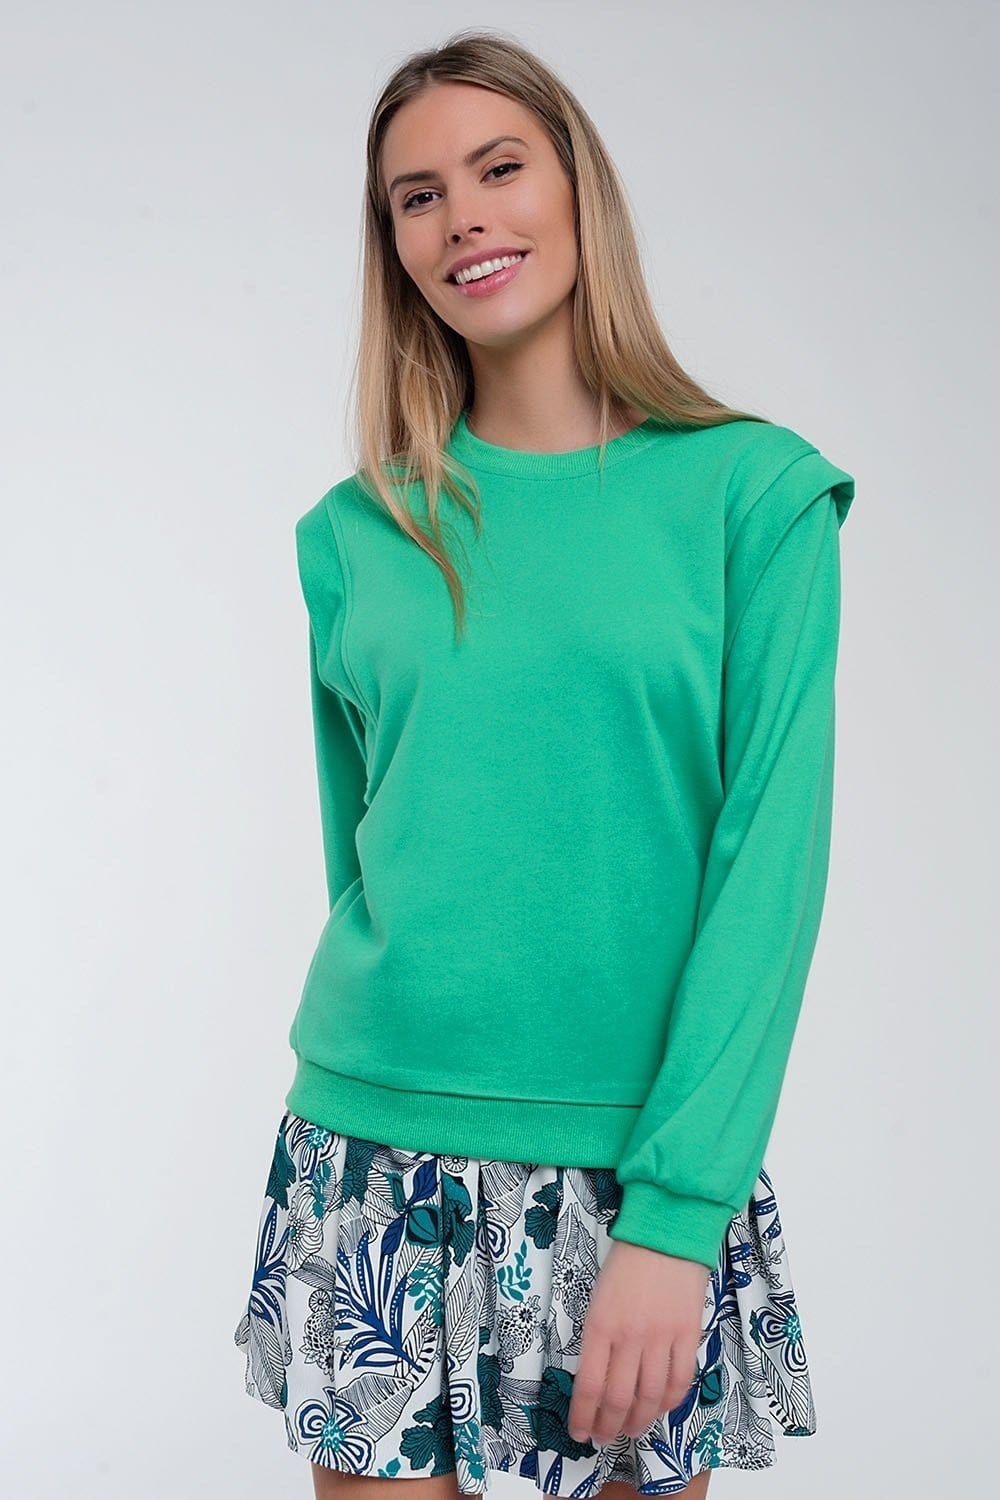 Boyfriend Sweatshirt with Shoulder Details - Himelhoch's